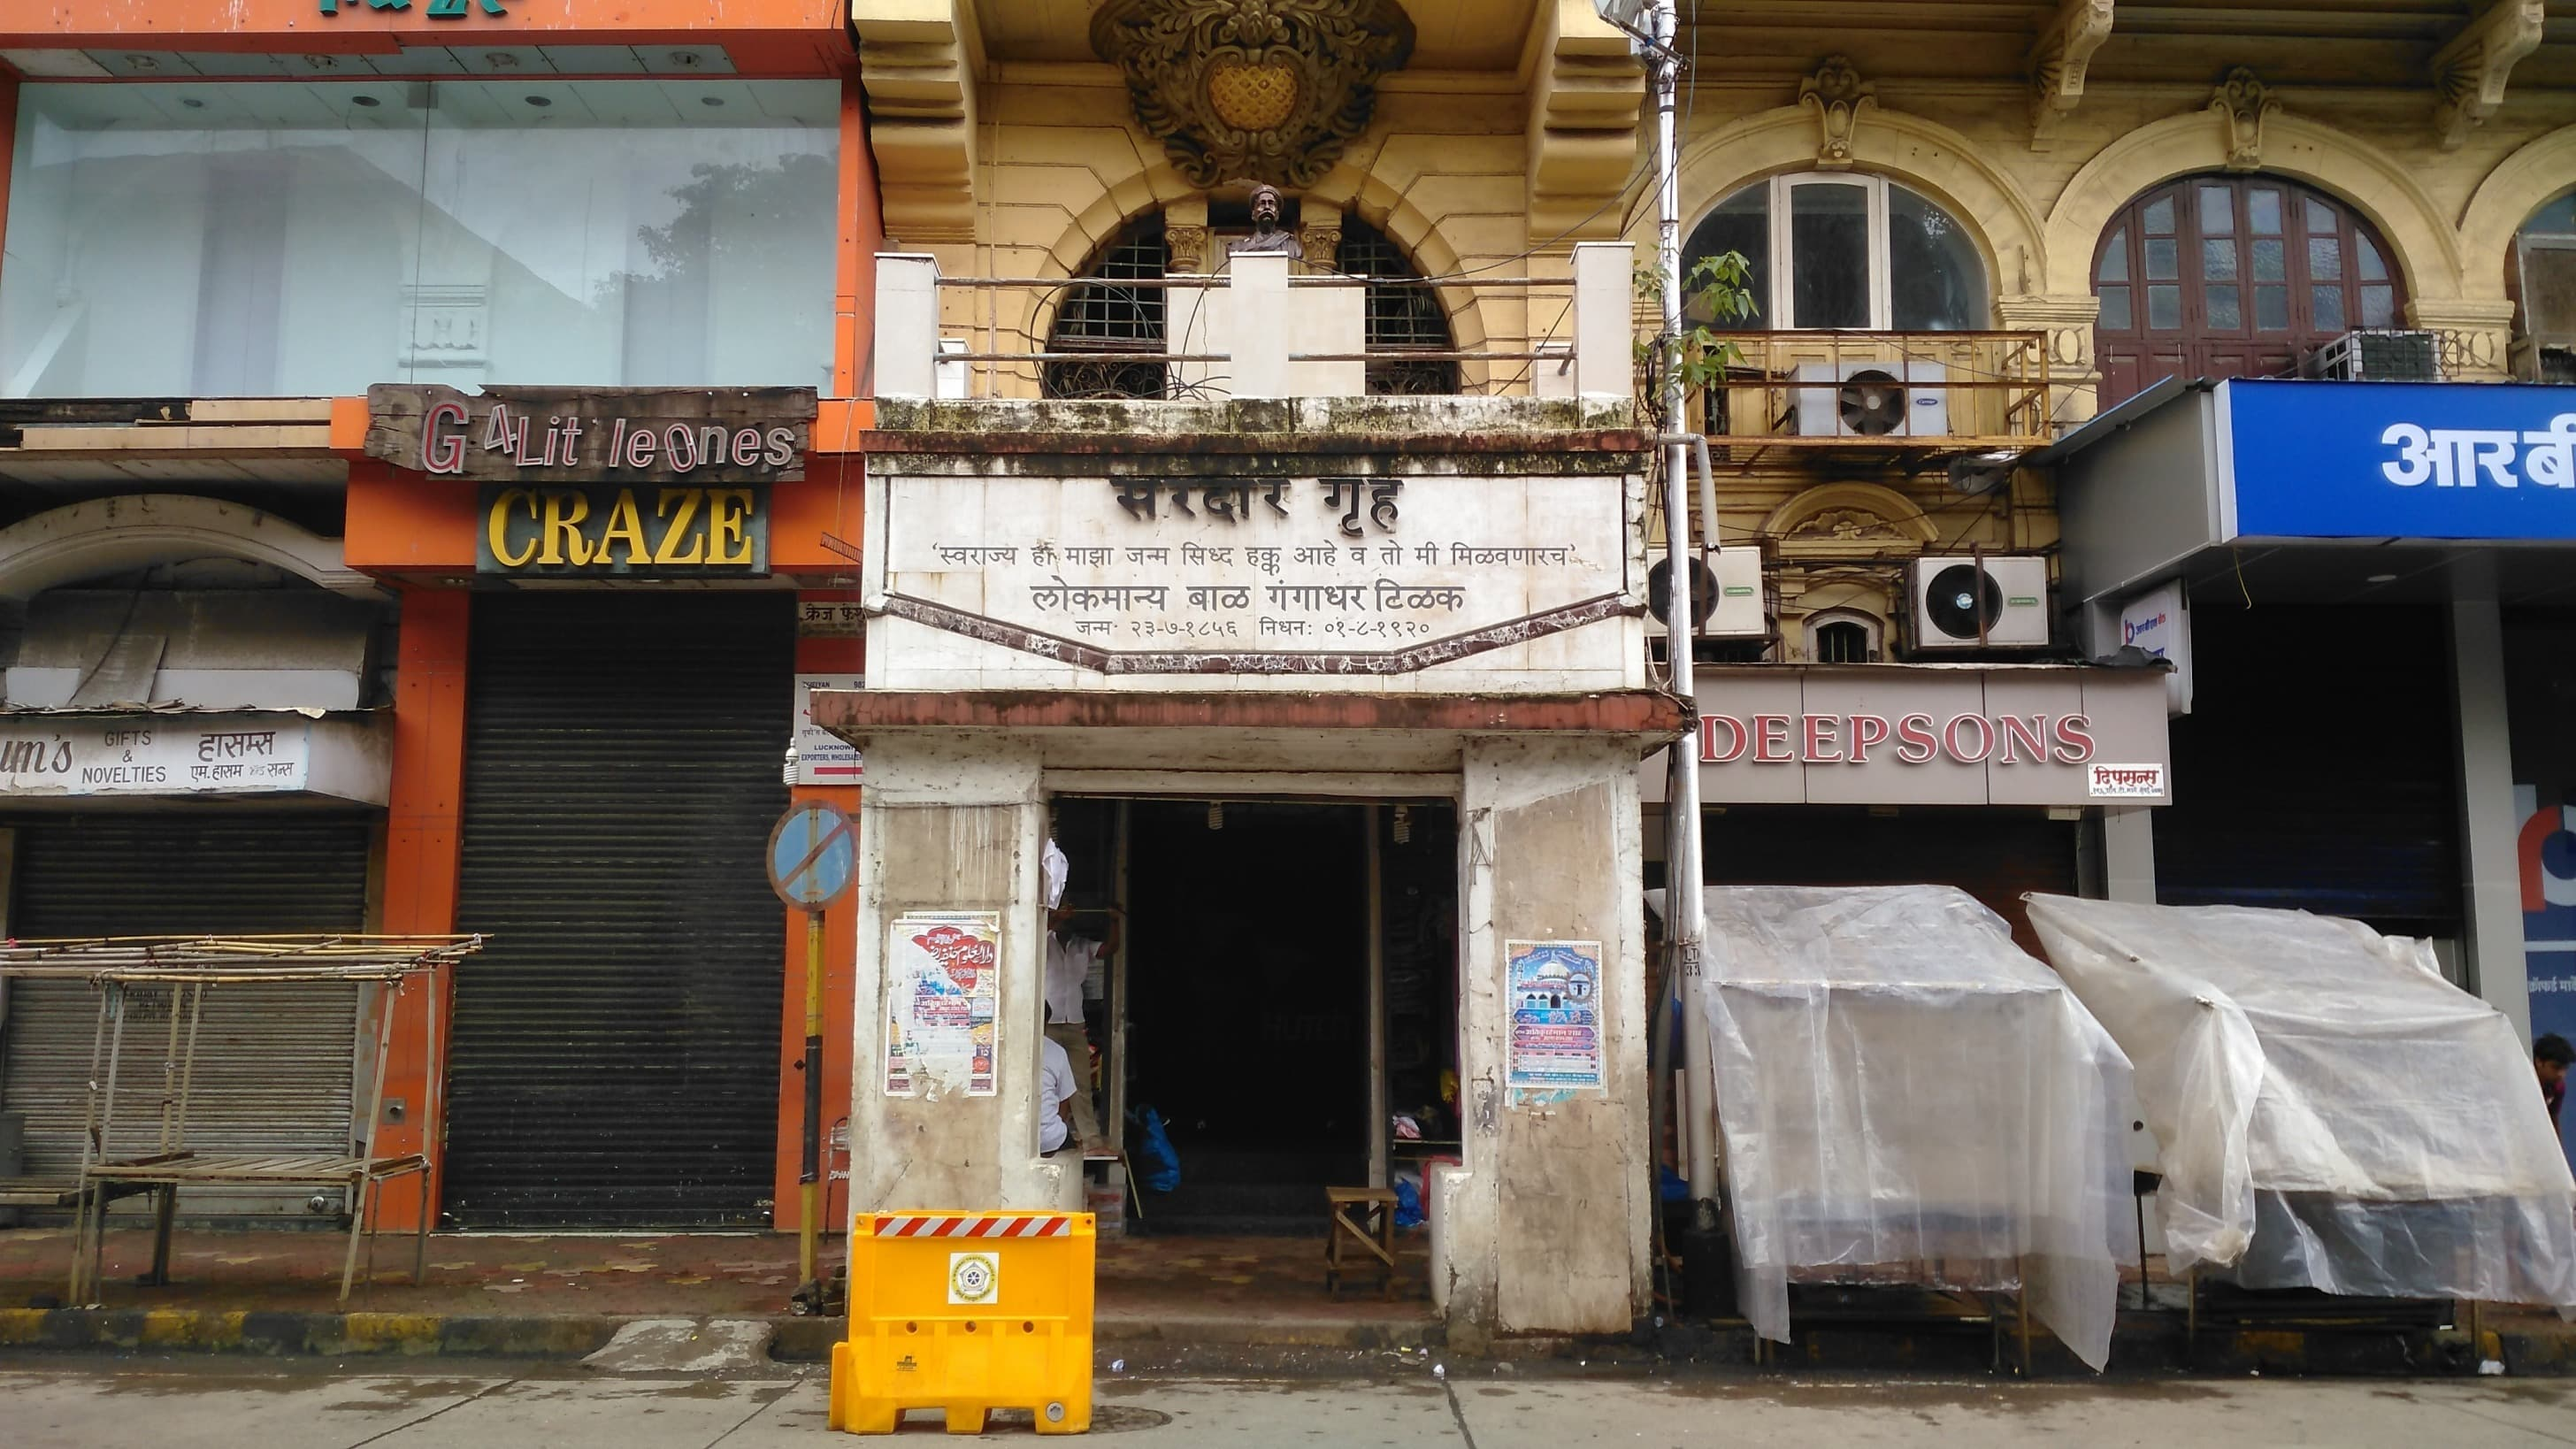 Sardar Grih Guest House in Mumbai where Tilak lived — and died. The Indian government's apathy towards the legacy of Lokmanya Tilak can be seen here. — Photo by writer